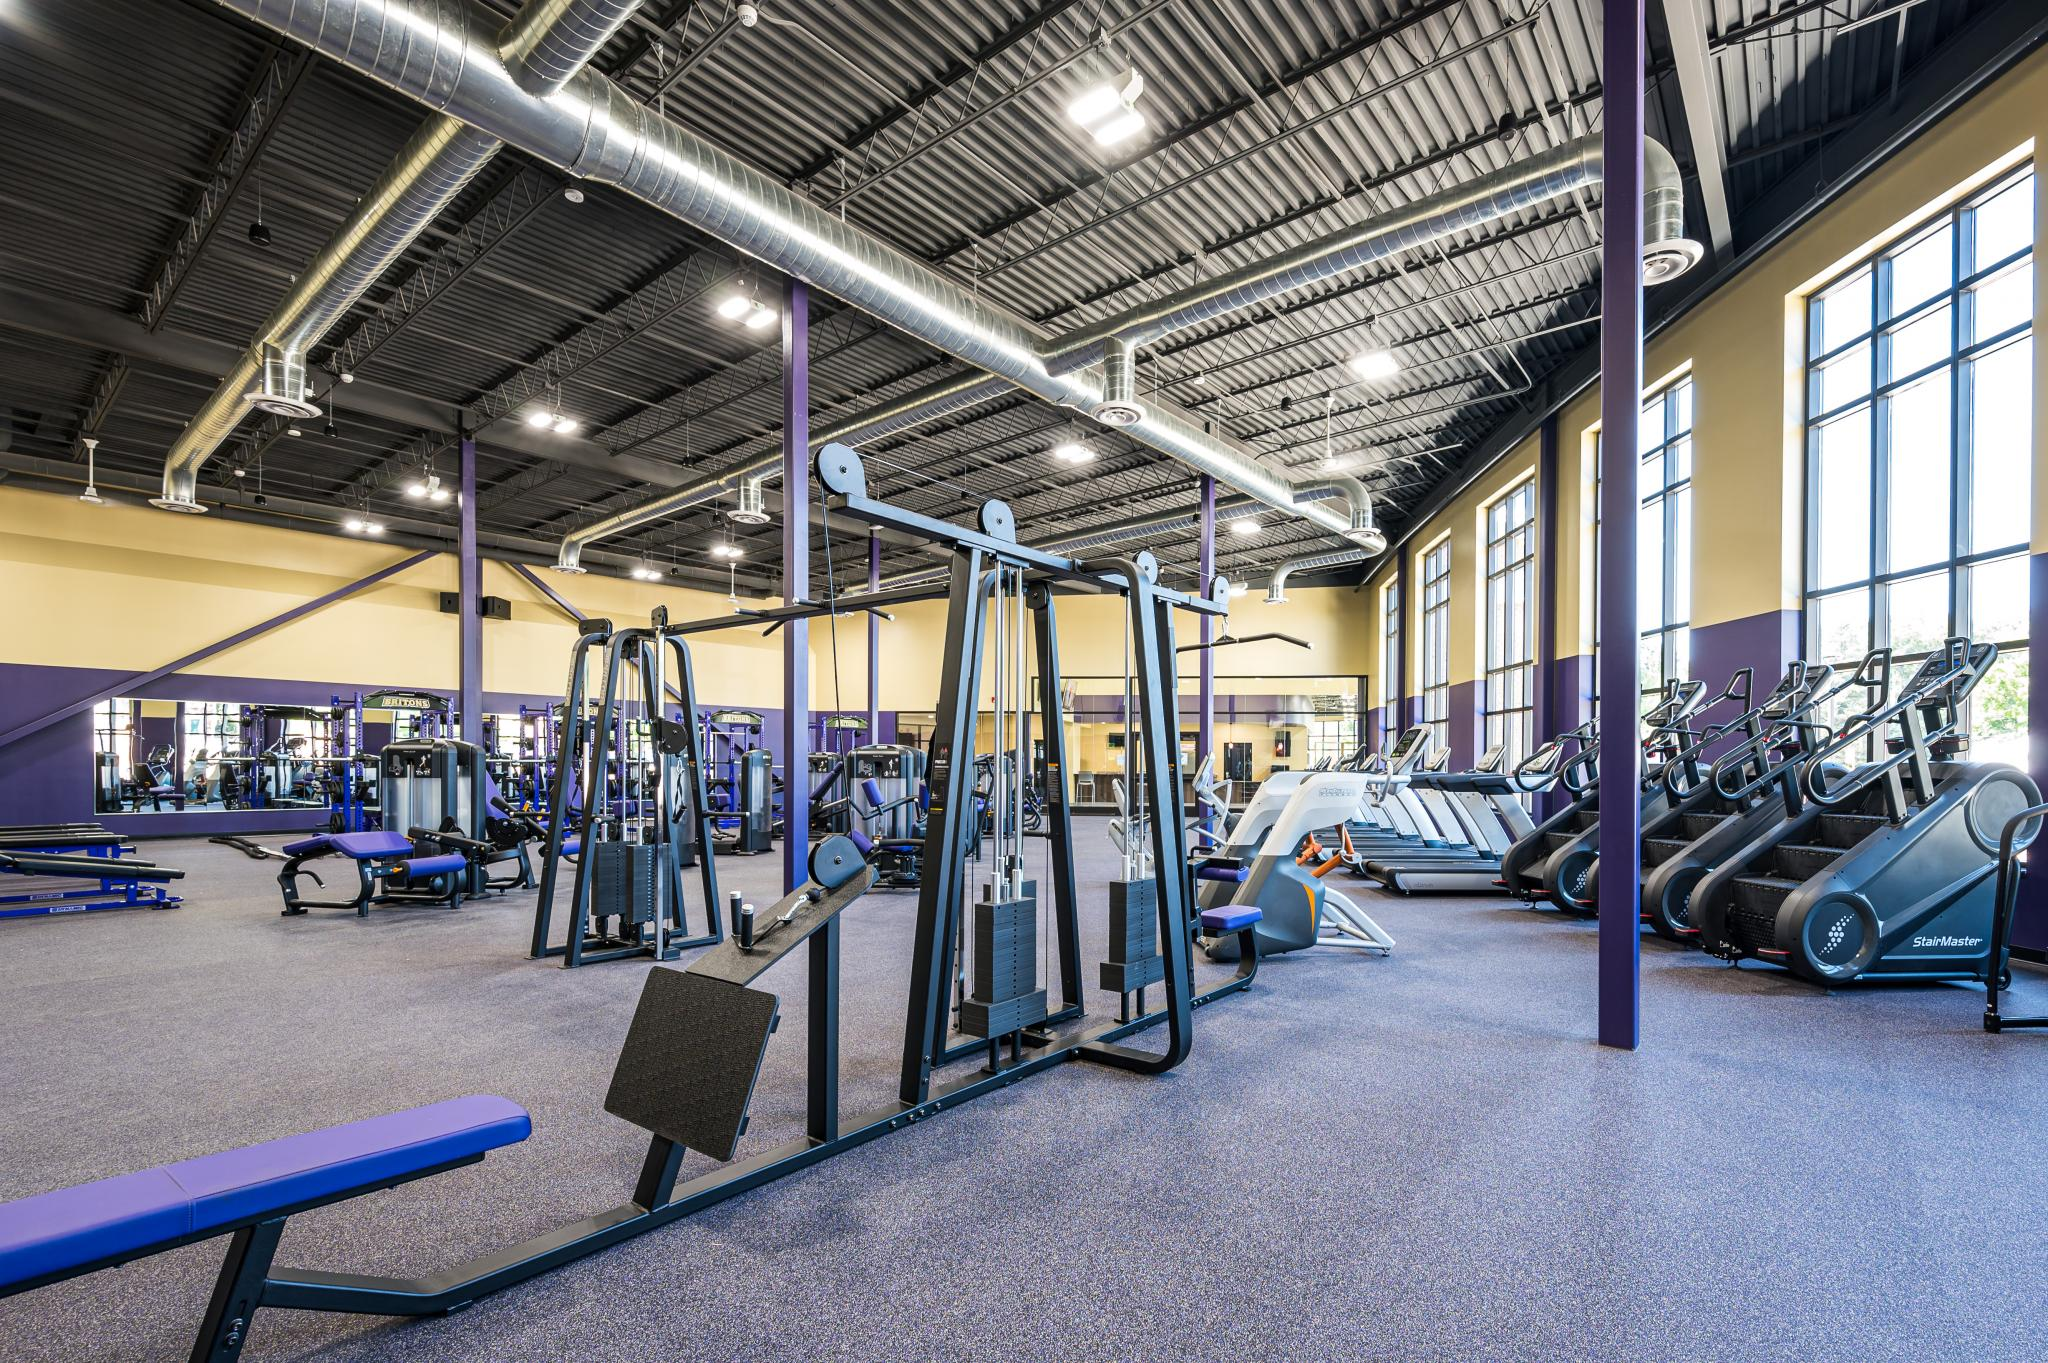 image of fitness center with weight machines